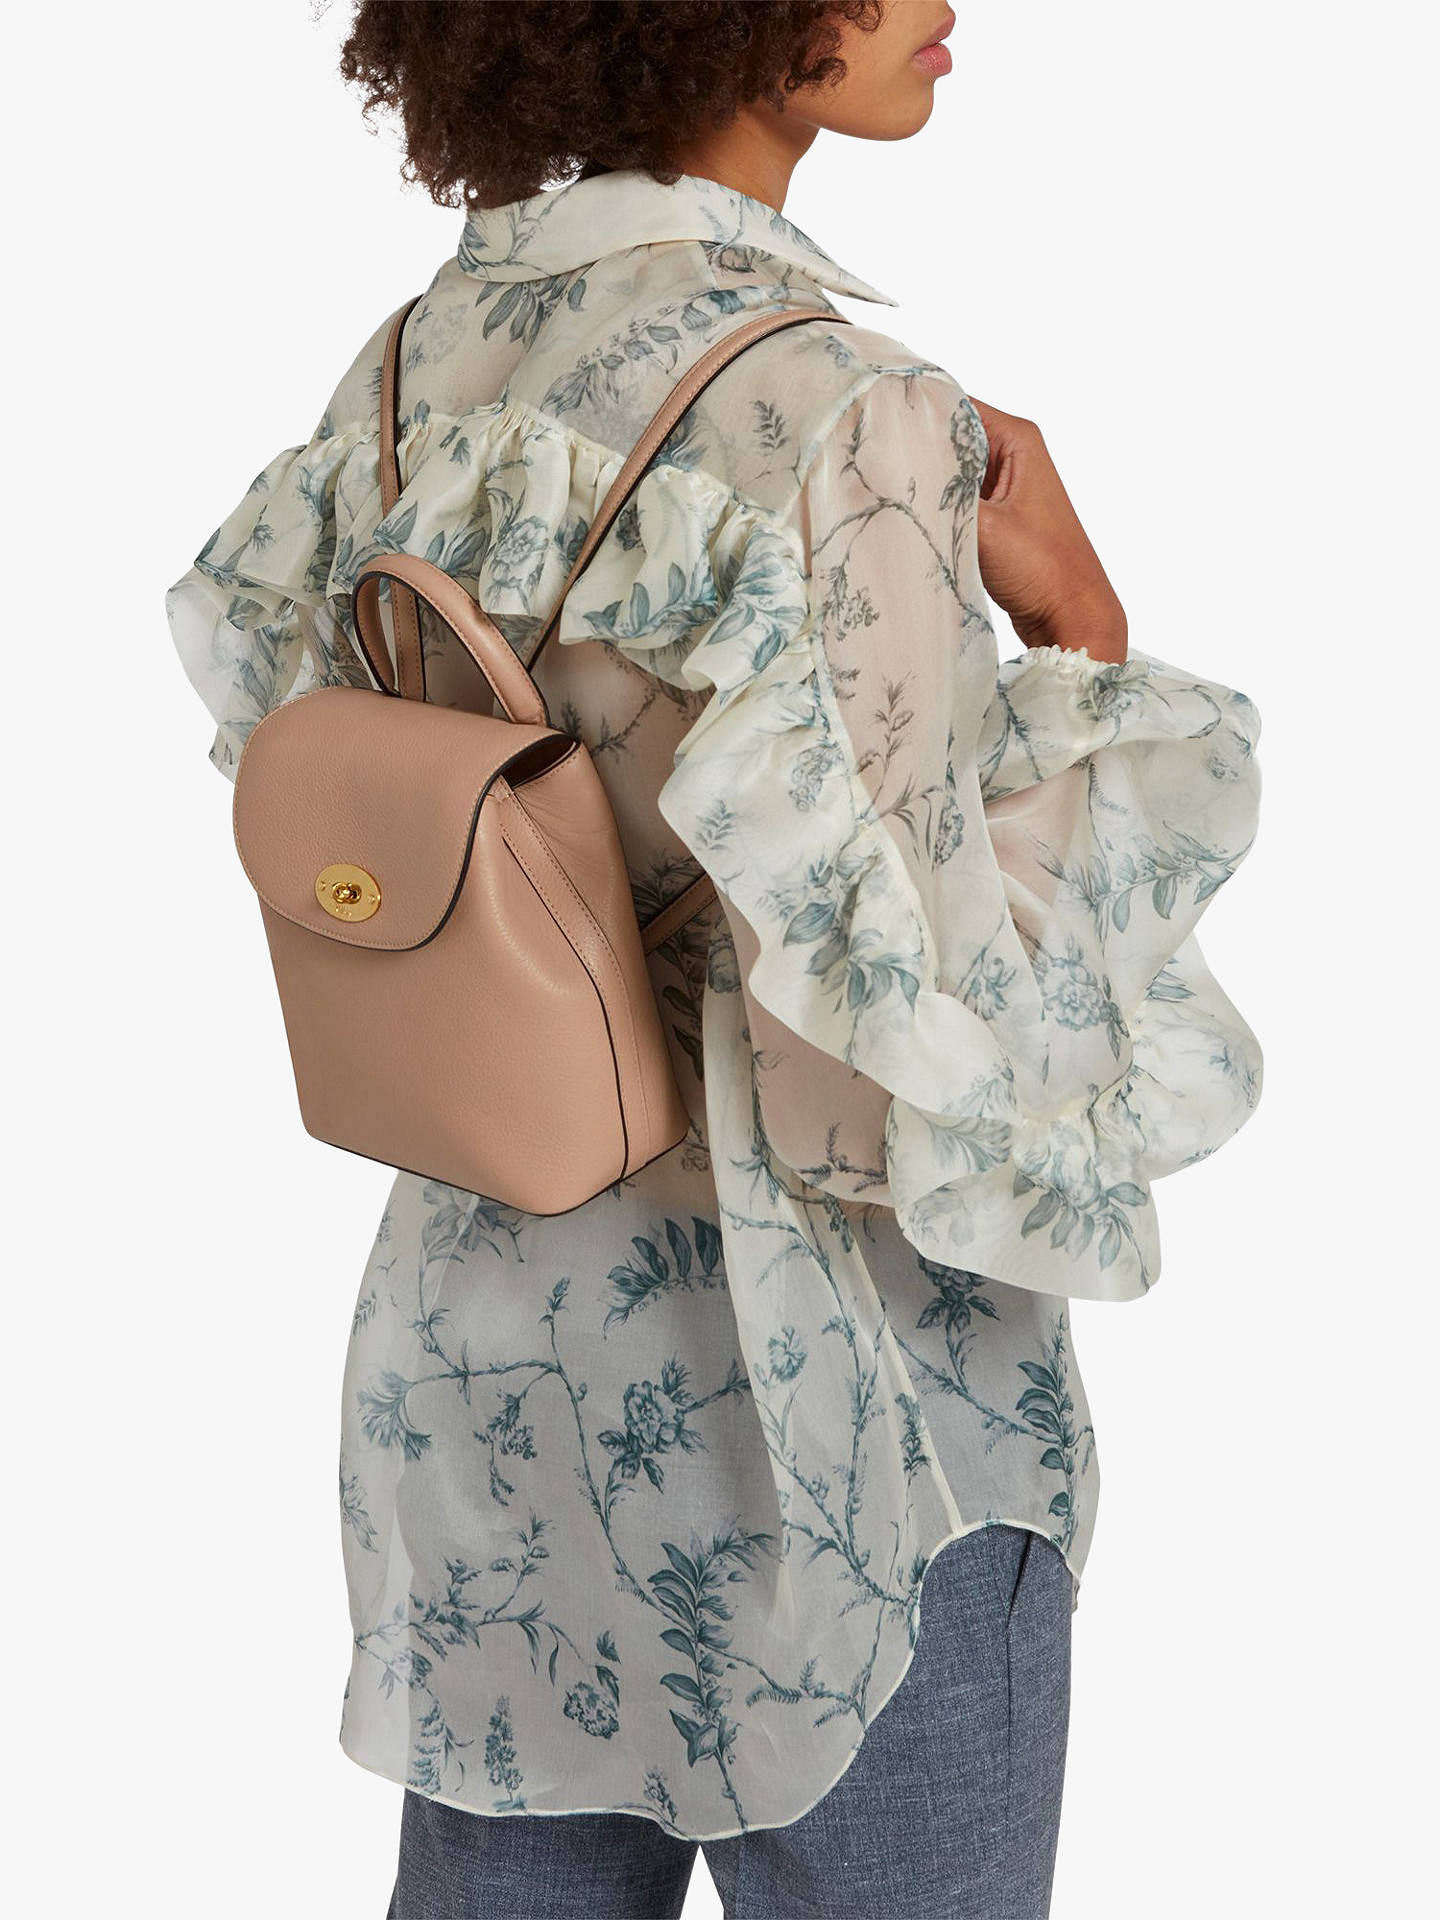 ... BuyMulberry Mini Bayswater Small Classic Grain Leather Backpack,  Rosewater Online at johnlewis.com ... 3edcbf3c9c